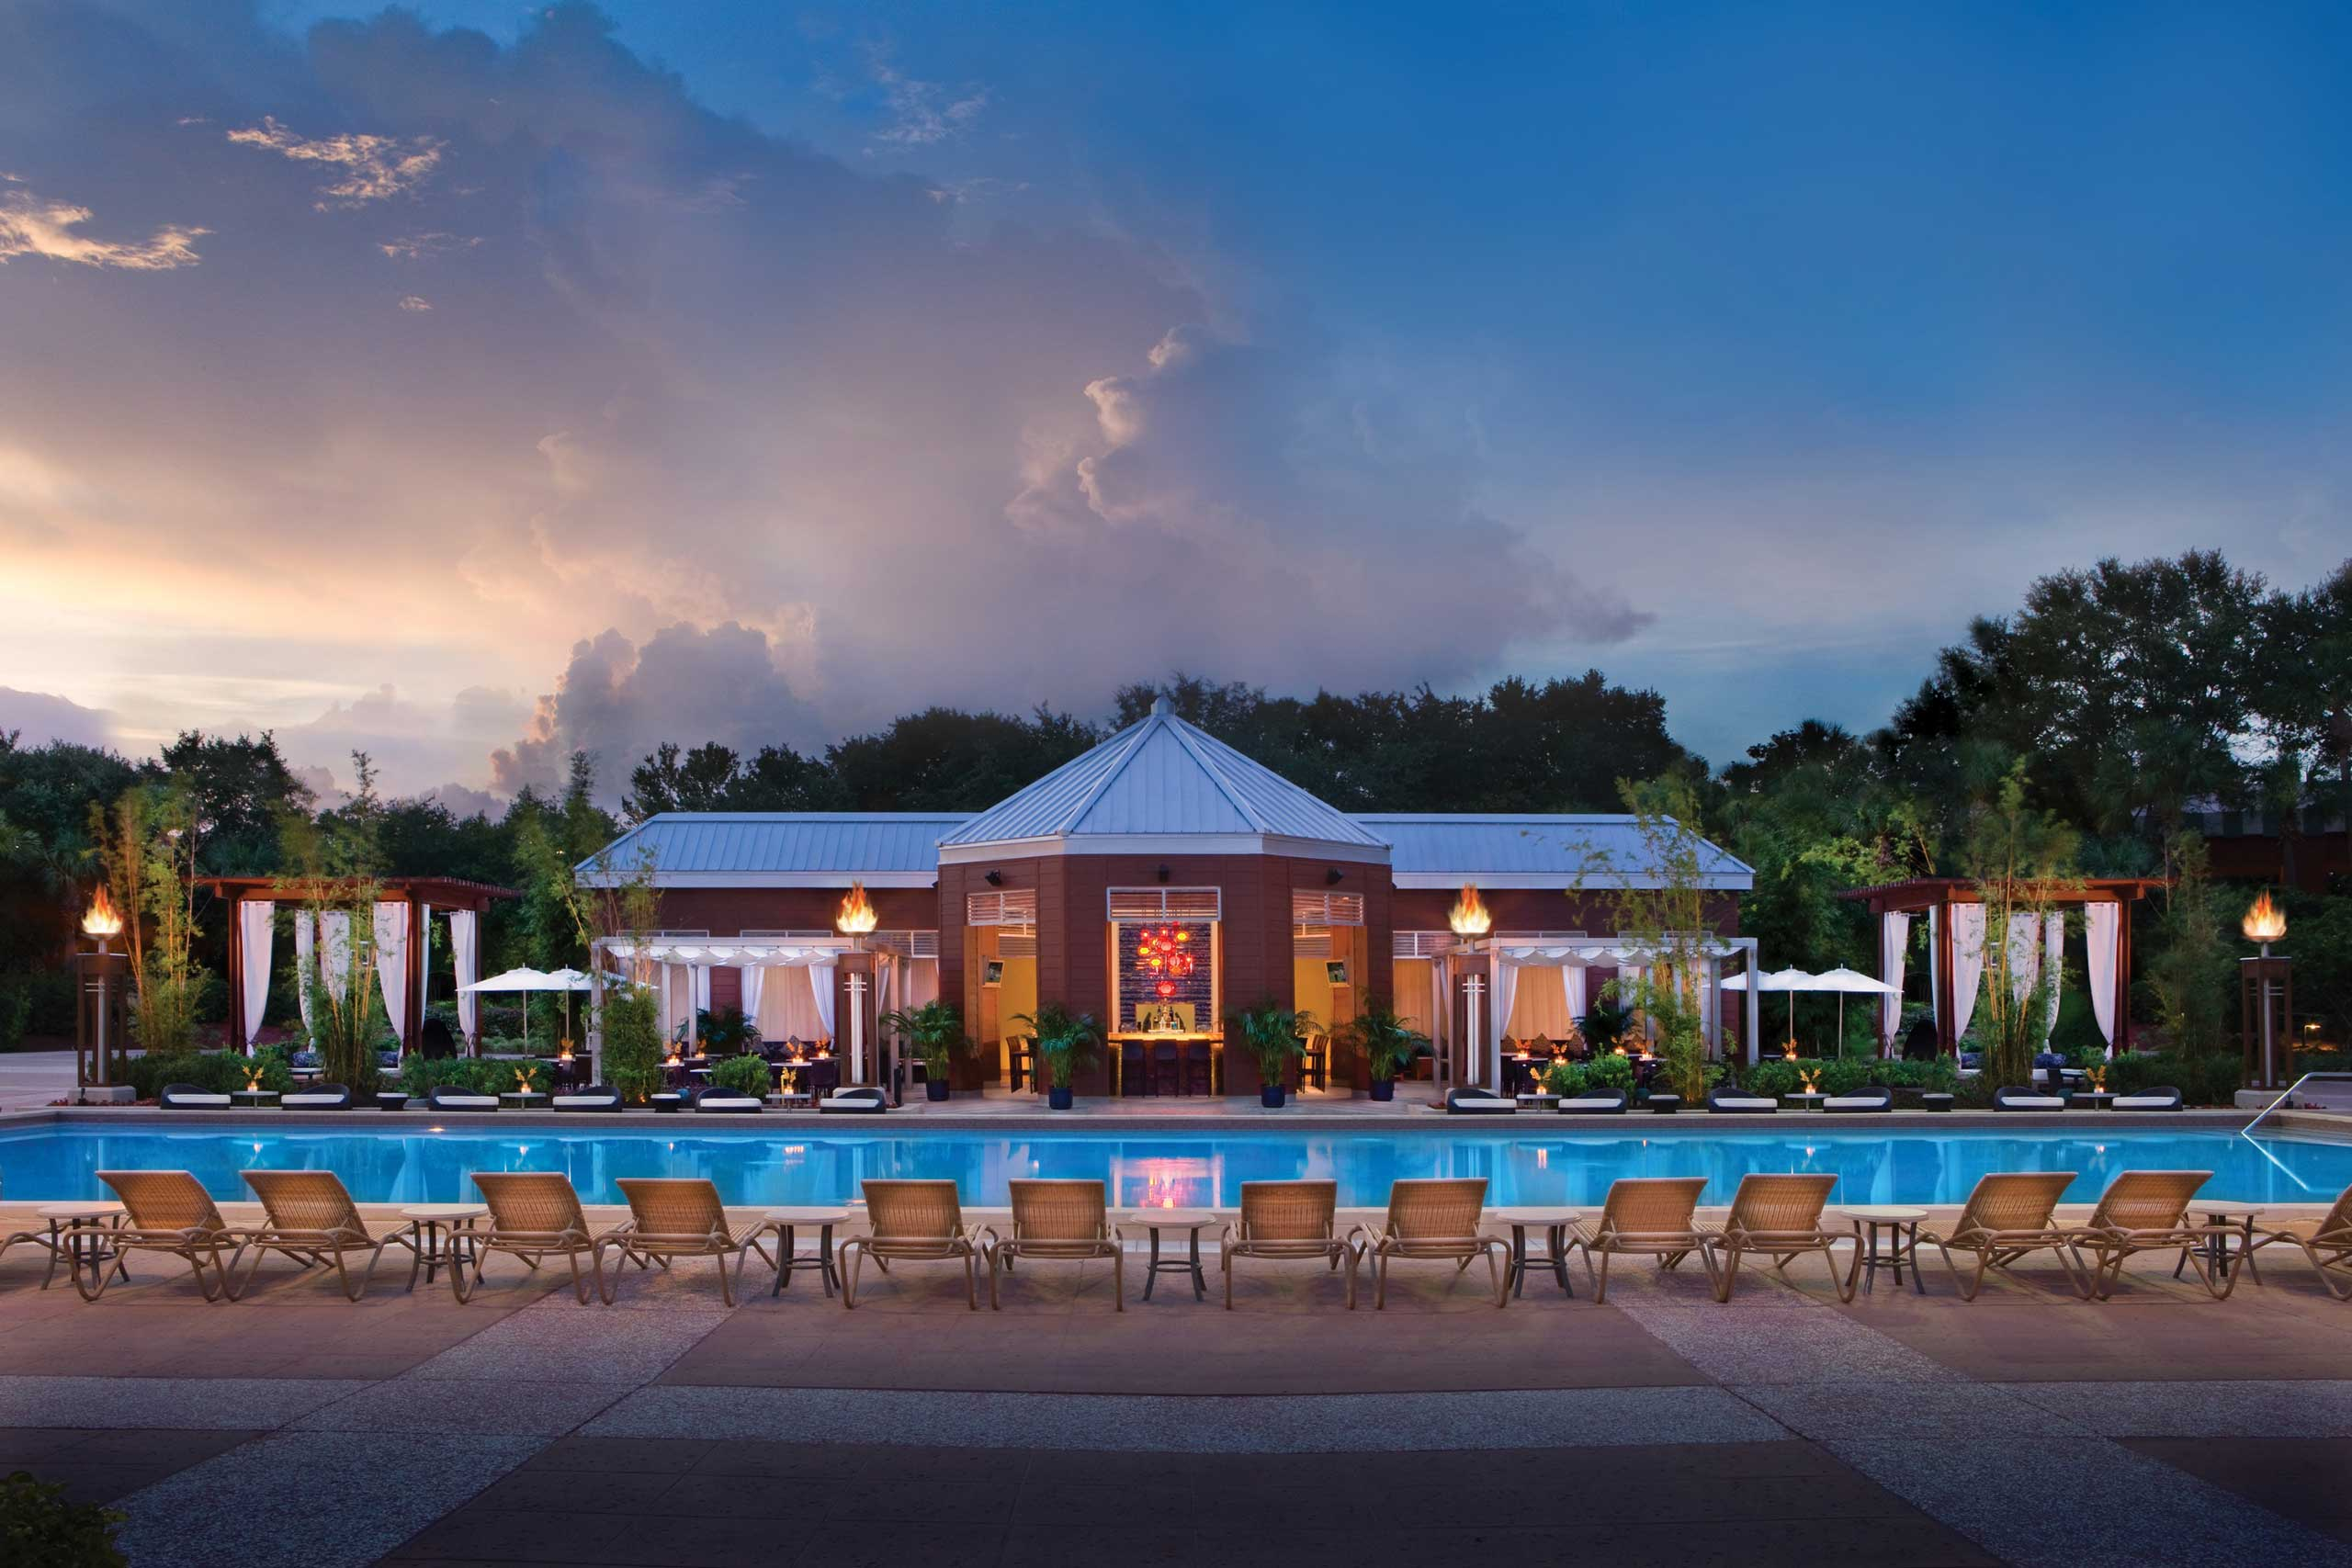 Walt Disney World Swan and Dolphin Resort is now offering up to a 30 percent discount for Annual Passholders